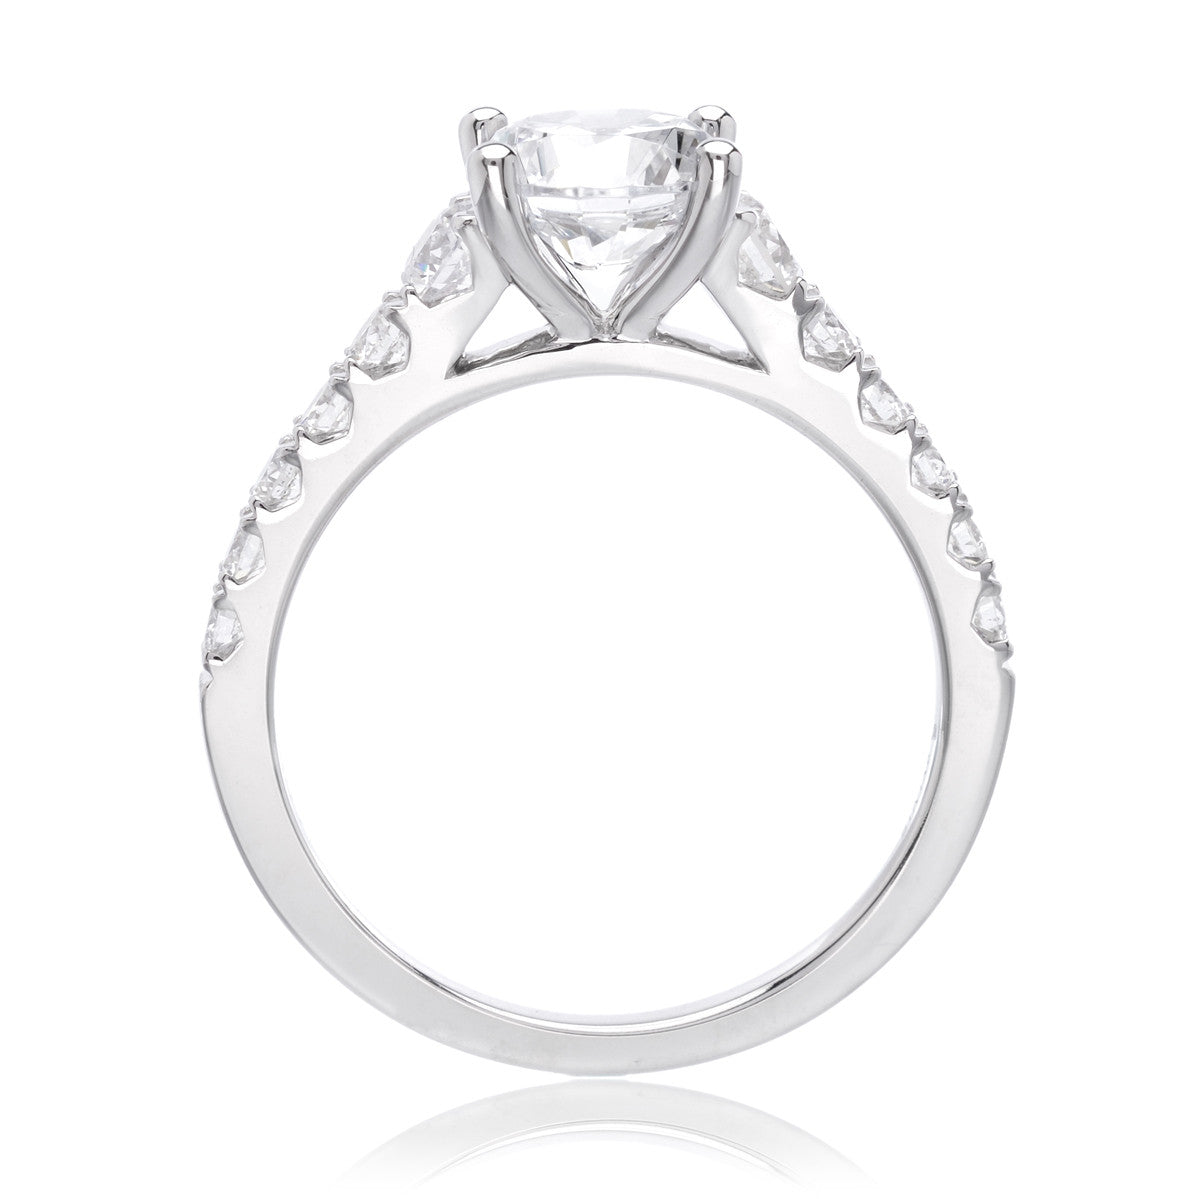 14K White Gold Classic Cascading Graduated Shank Engagement Ring Setting